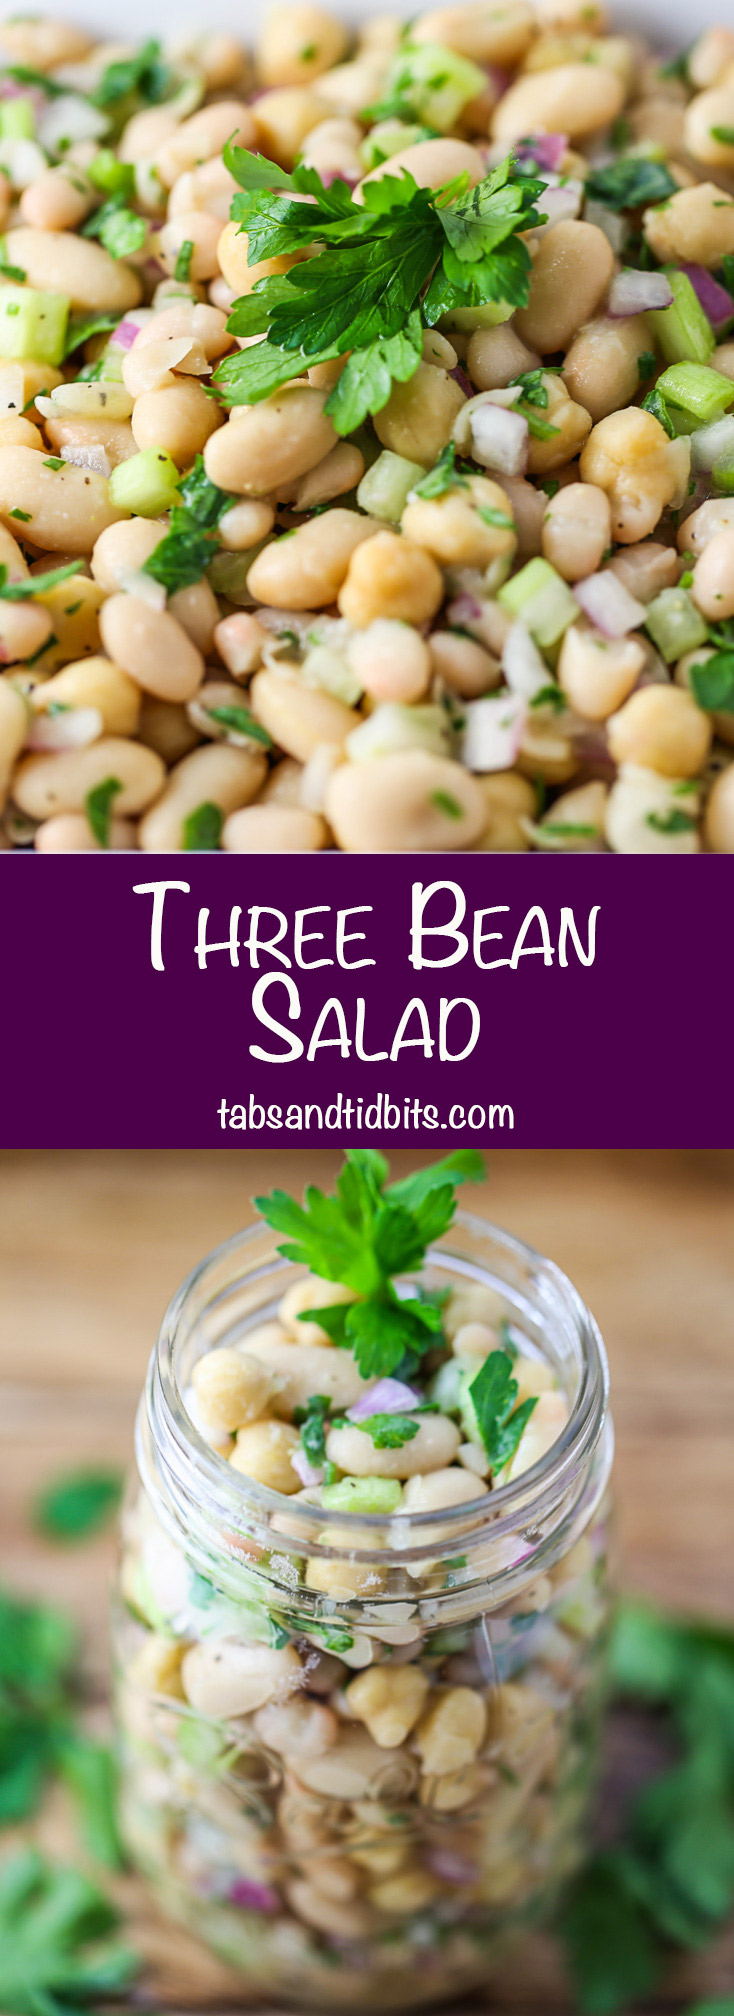 Three Bean Salad - A protein packed healthy three bean salad.